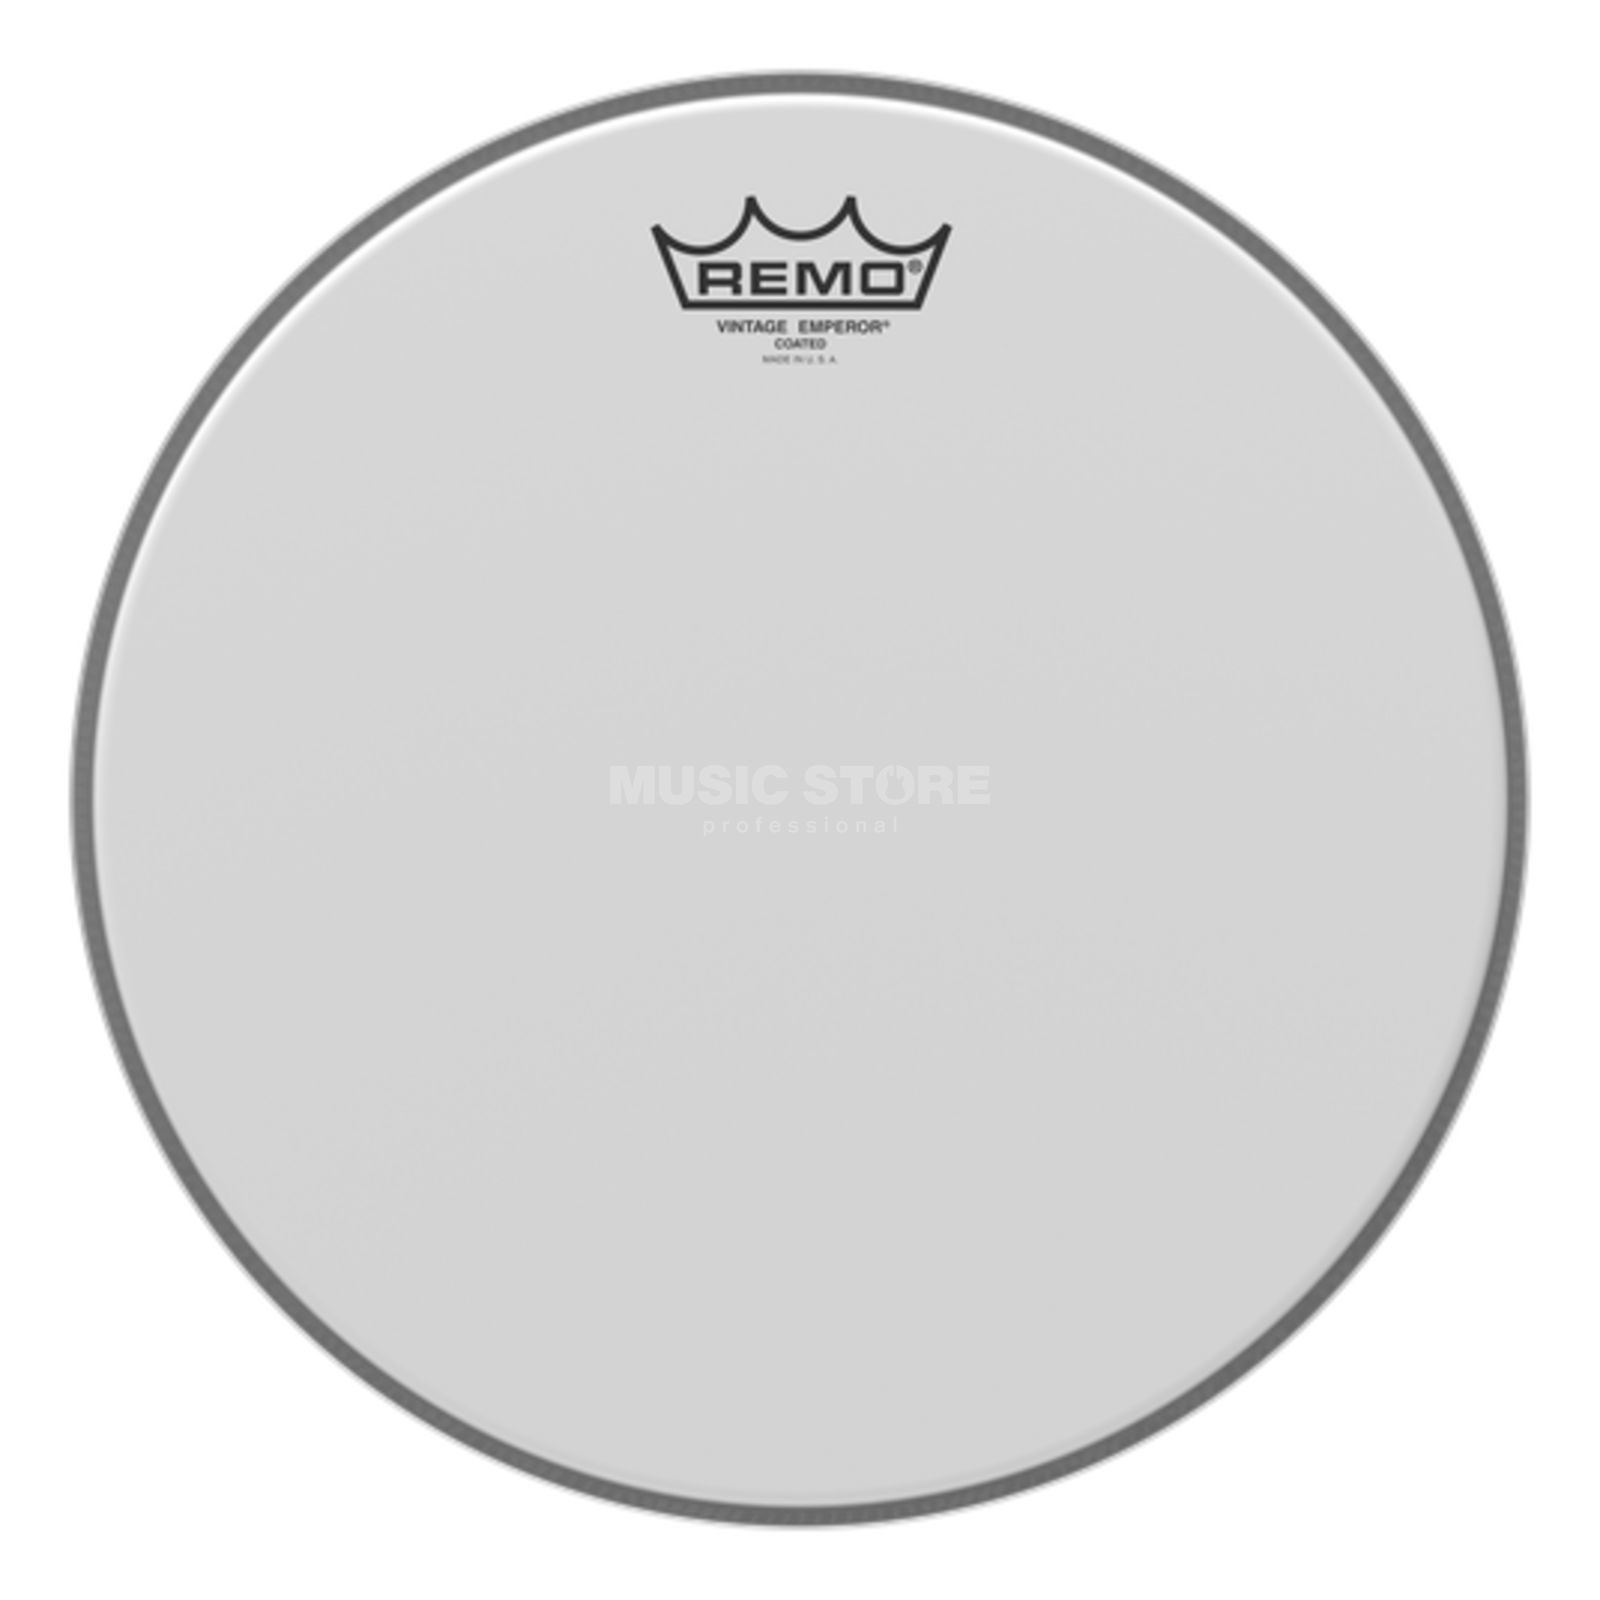 "Remo Vintage Emperor 12"", coated, Tom Batter/Reso Product Image"